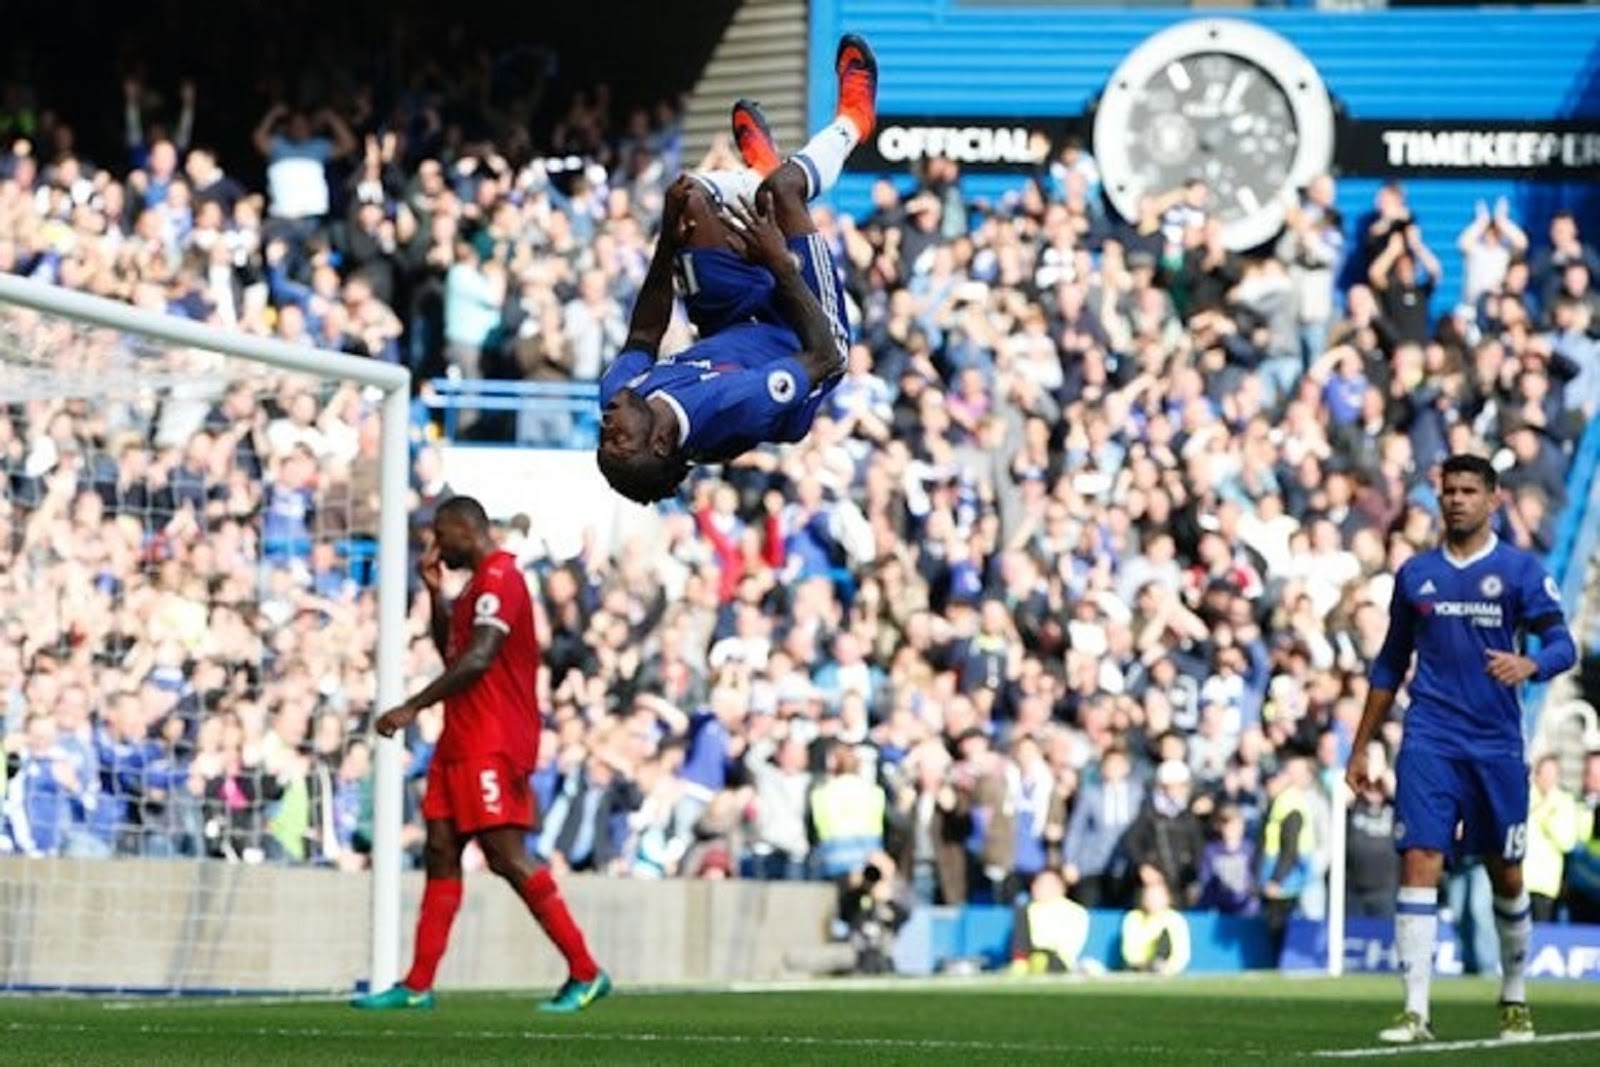 VICTOR MOSES 5